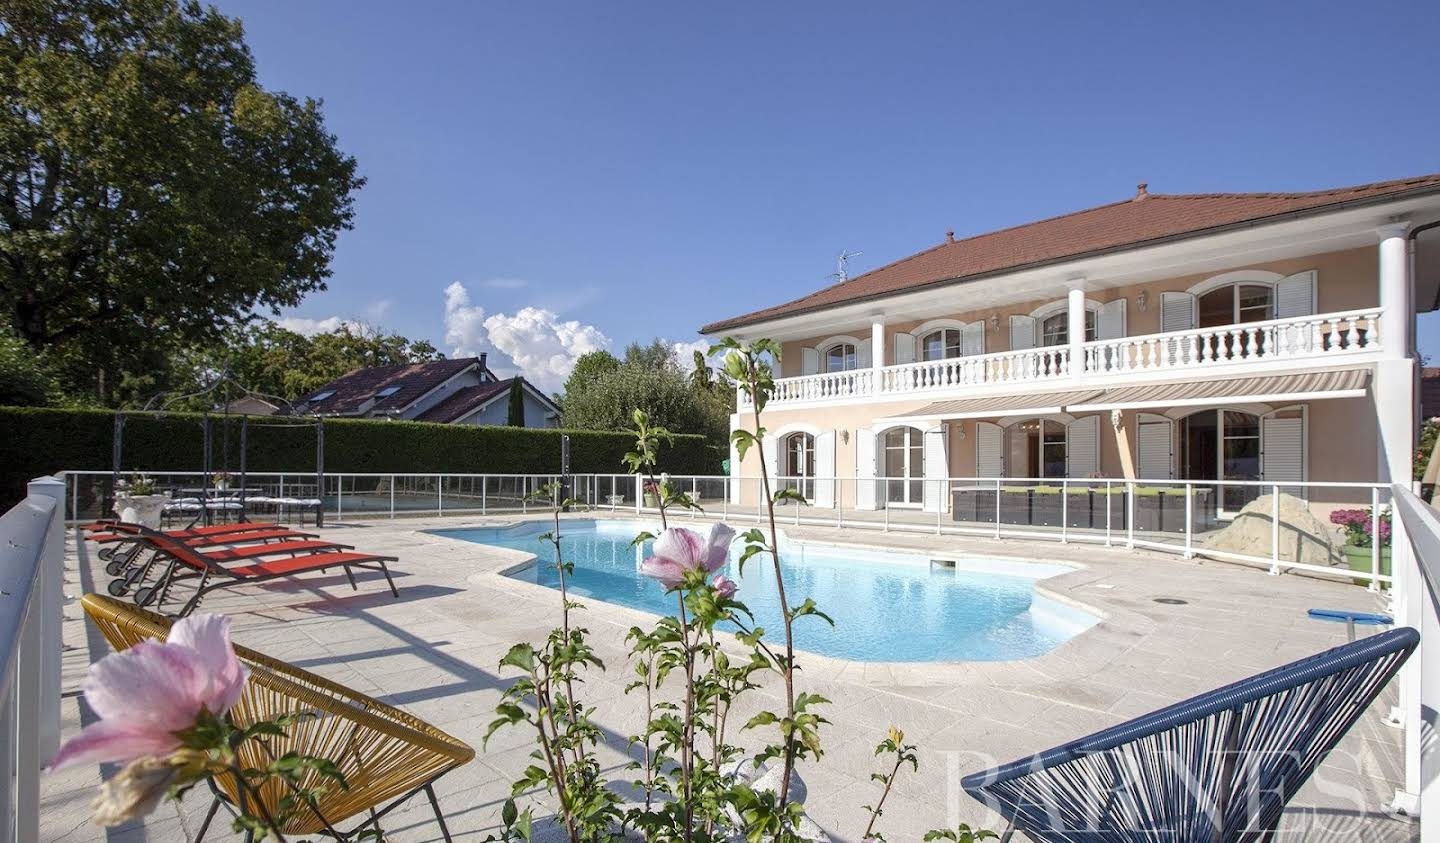 Villa with pool and terrace Prévessin-Moëns